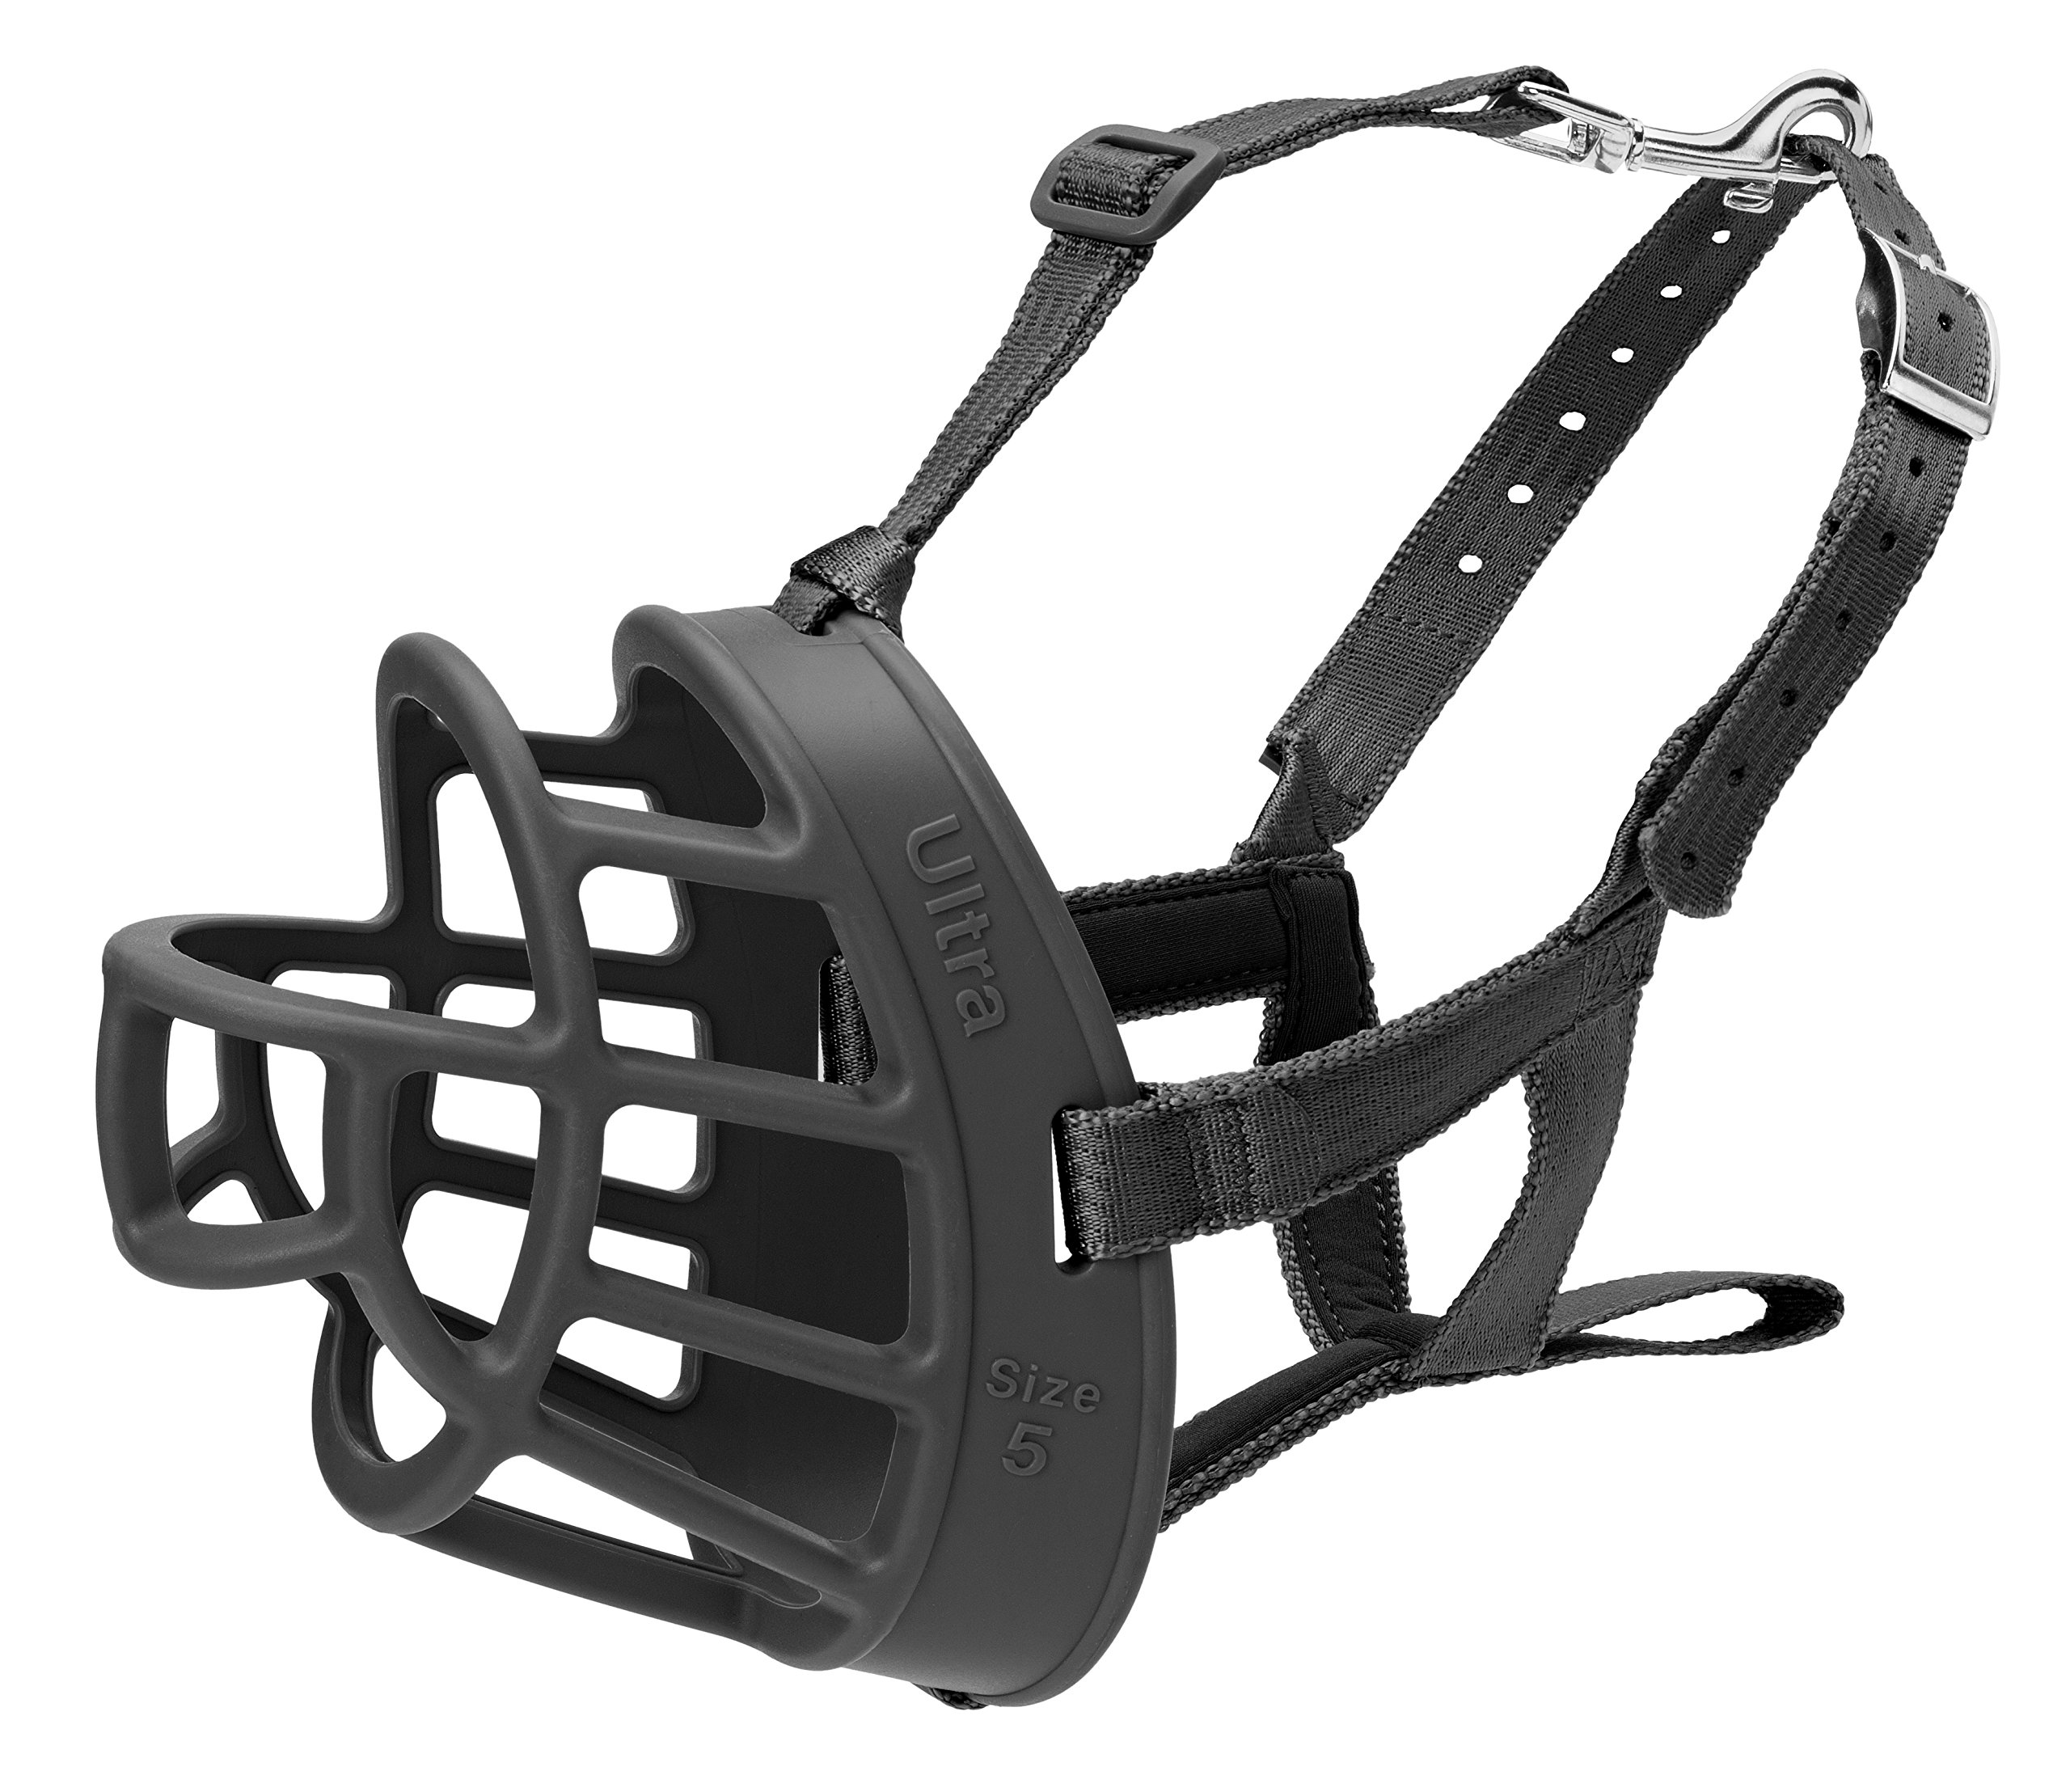 The Company of Animals Baskerville Ultra Basket Dog Muzzle Adjustable and Comfortable Secure Fit - Durable Lightweight Rubber - Stops Biting, safe retraining of aggressive dogs- Size-4, Black